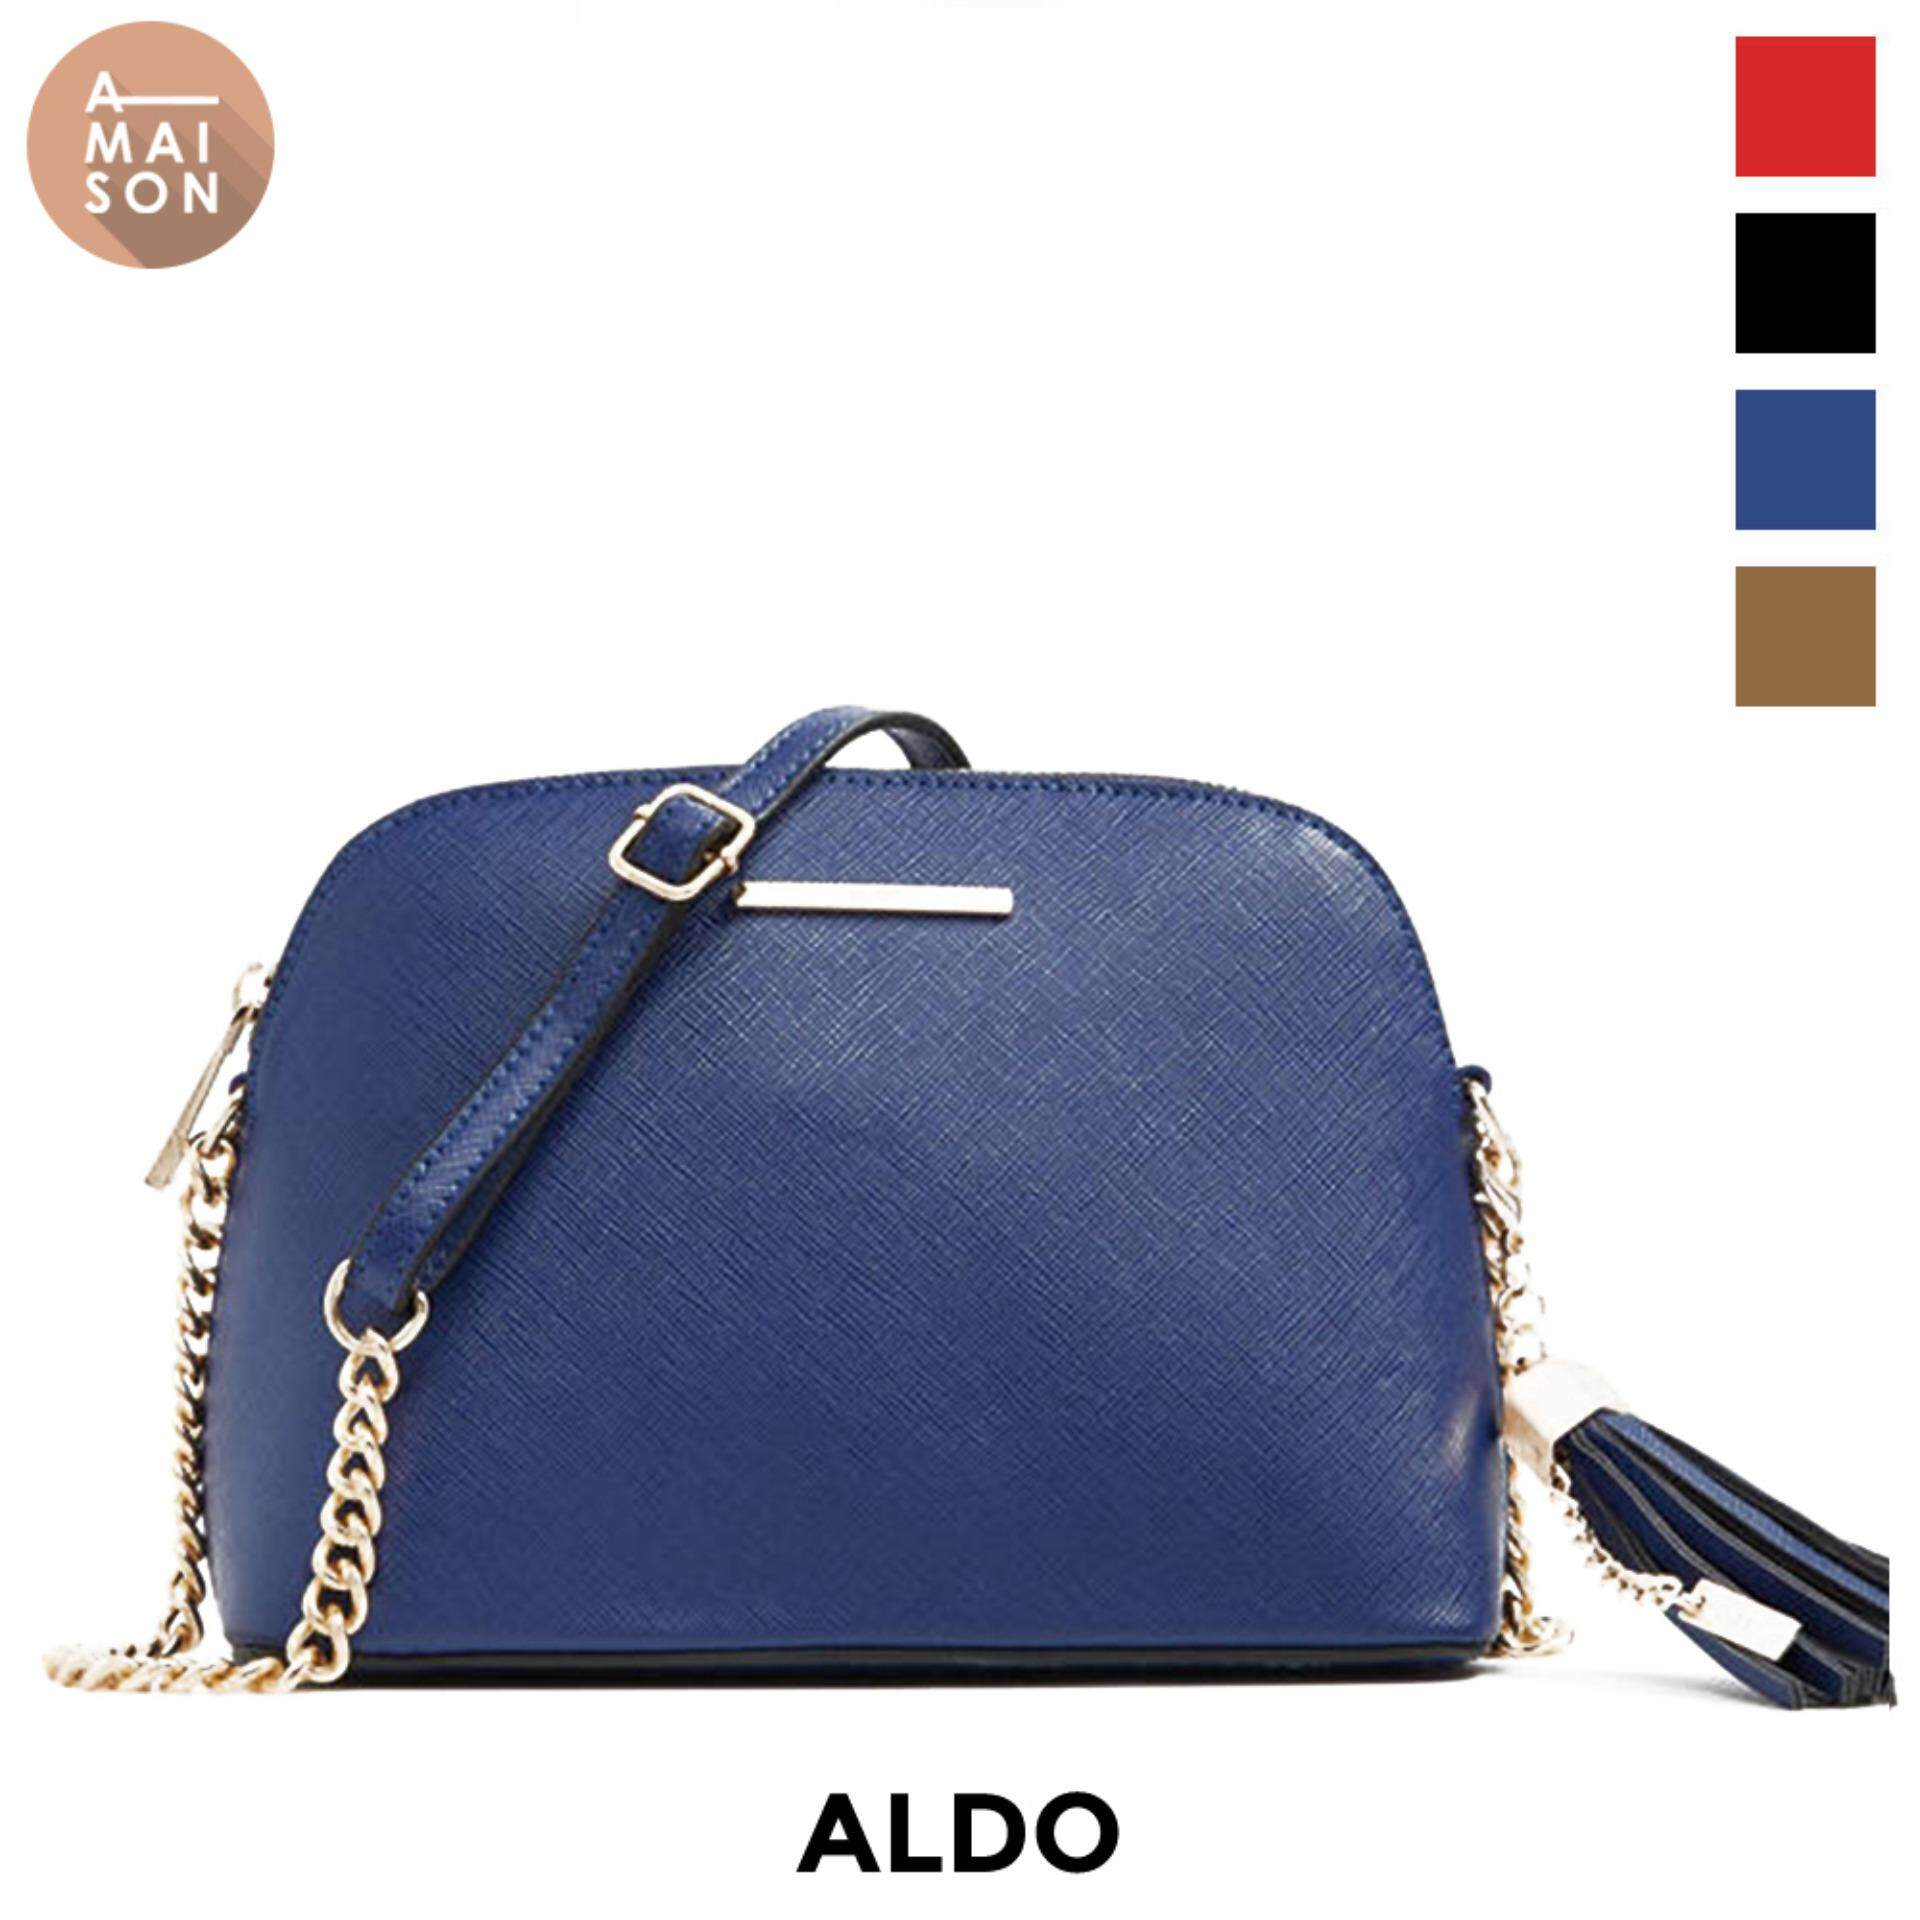 7fb121393fc Authentic Aldo Elroodie Saffiano Leather Shell Daily Chic Crossbody Satchel  Minimal Simple Tassel Sling Bag